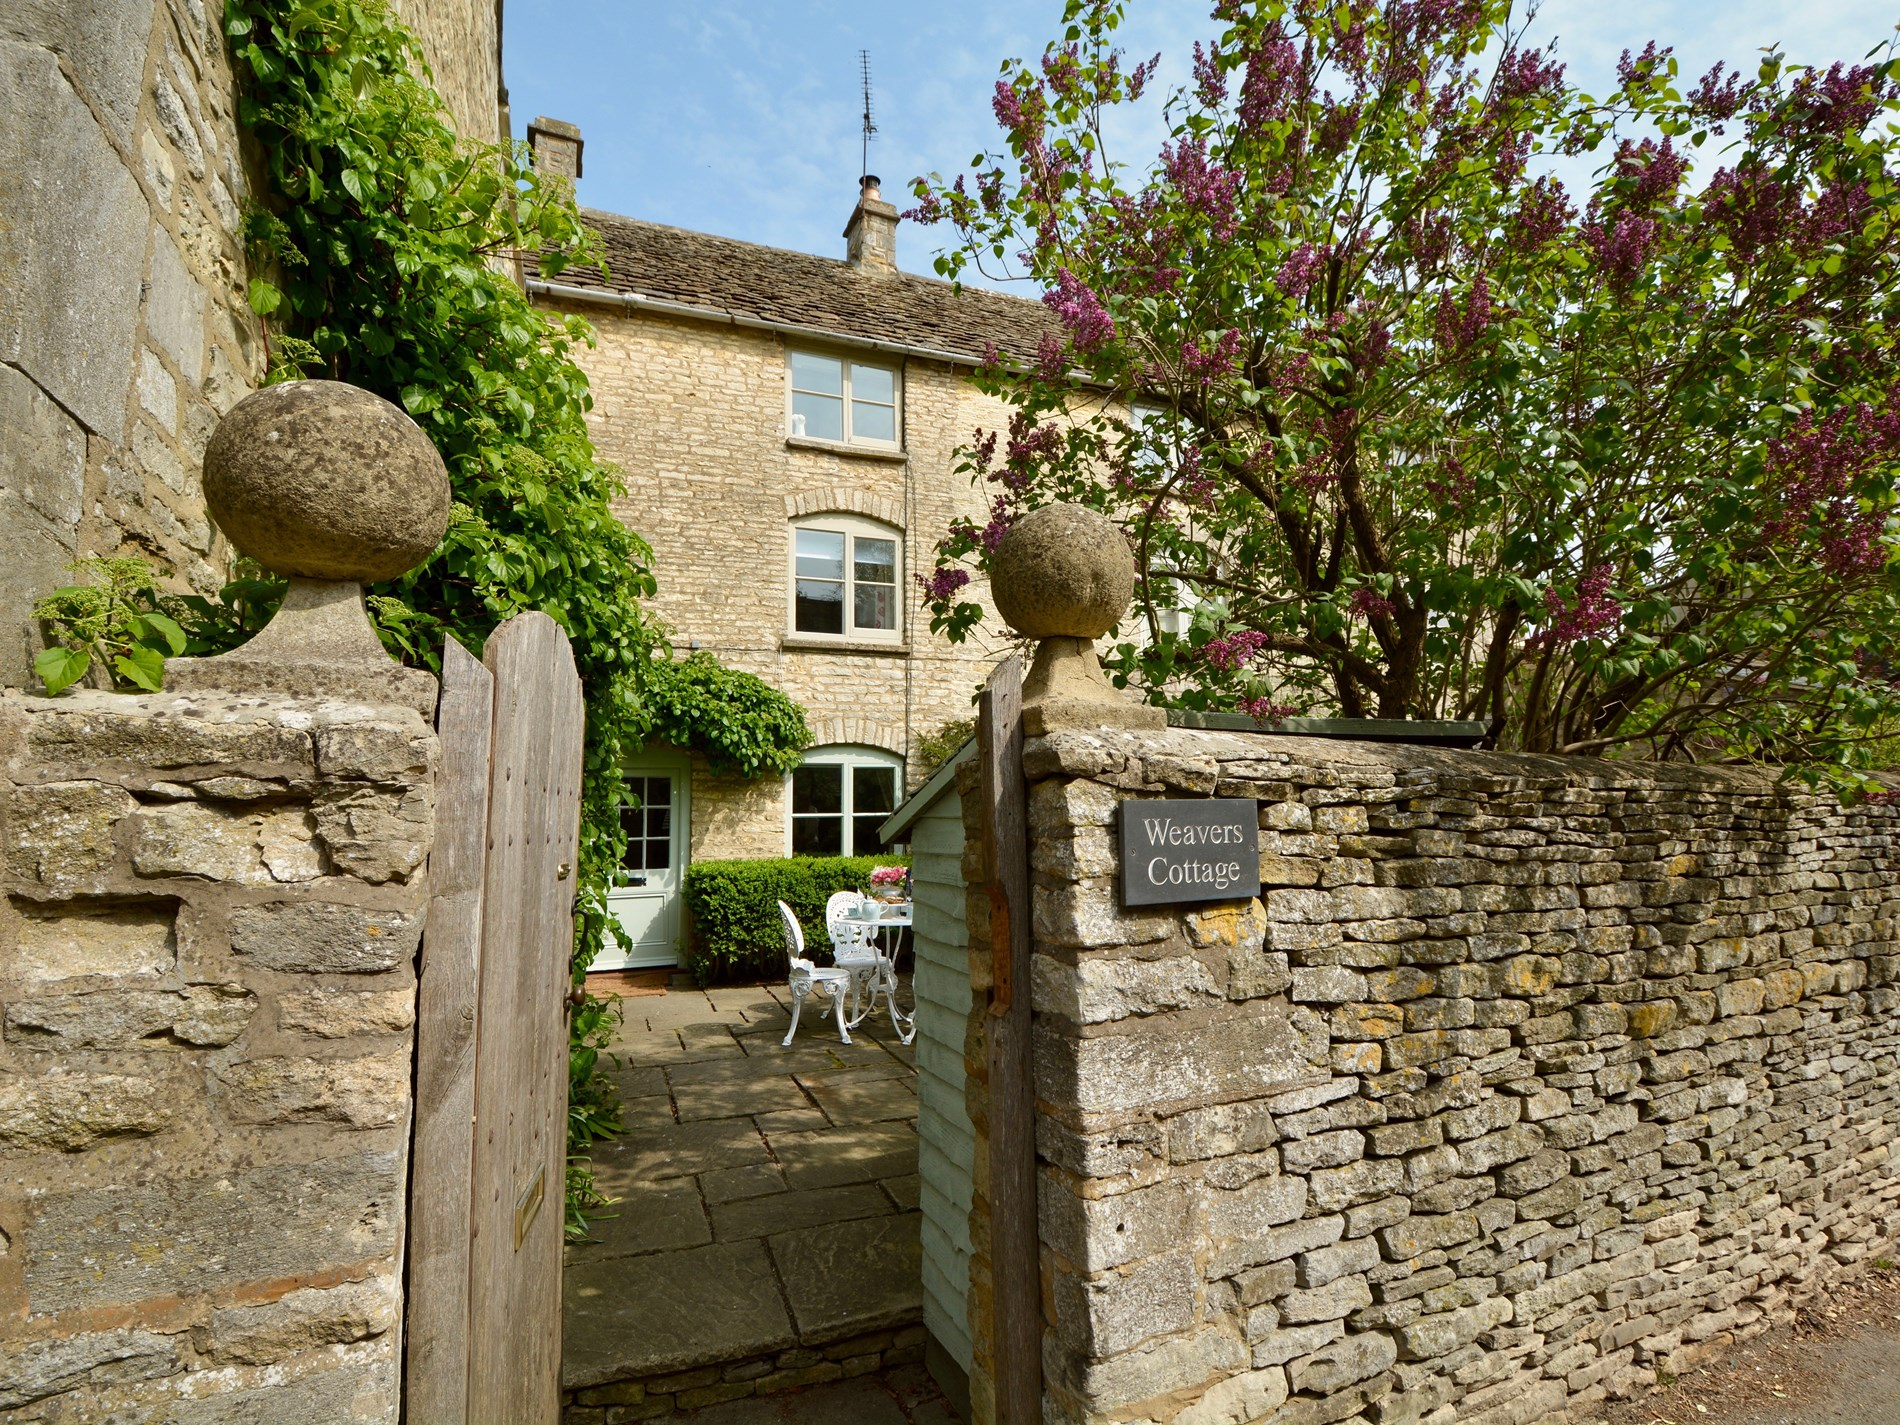 Ferienhaus in Minchinhampton